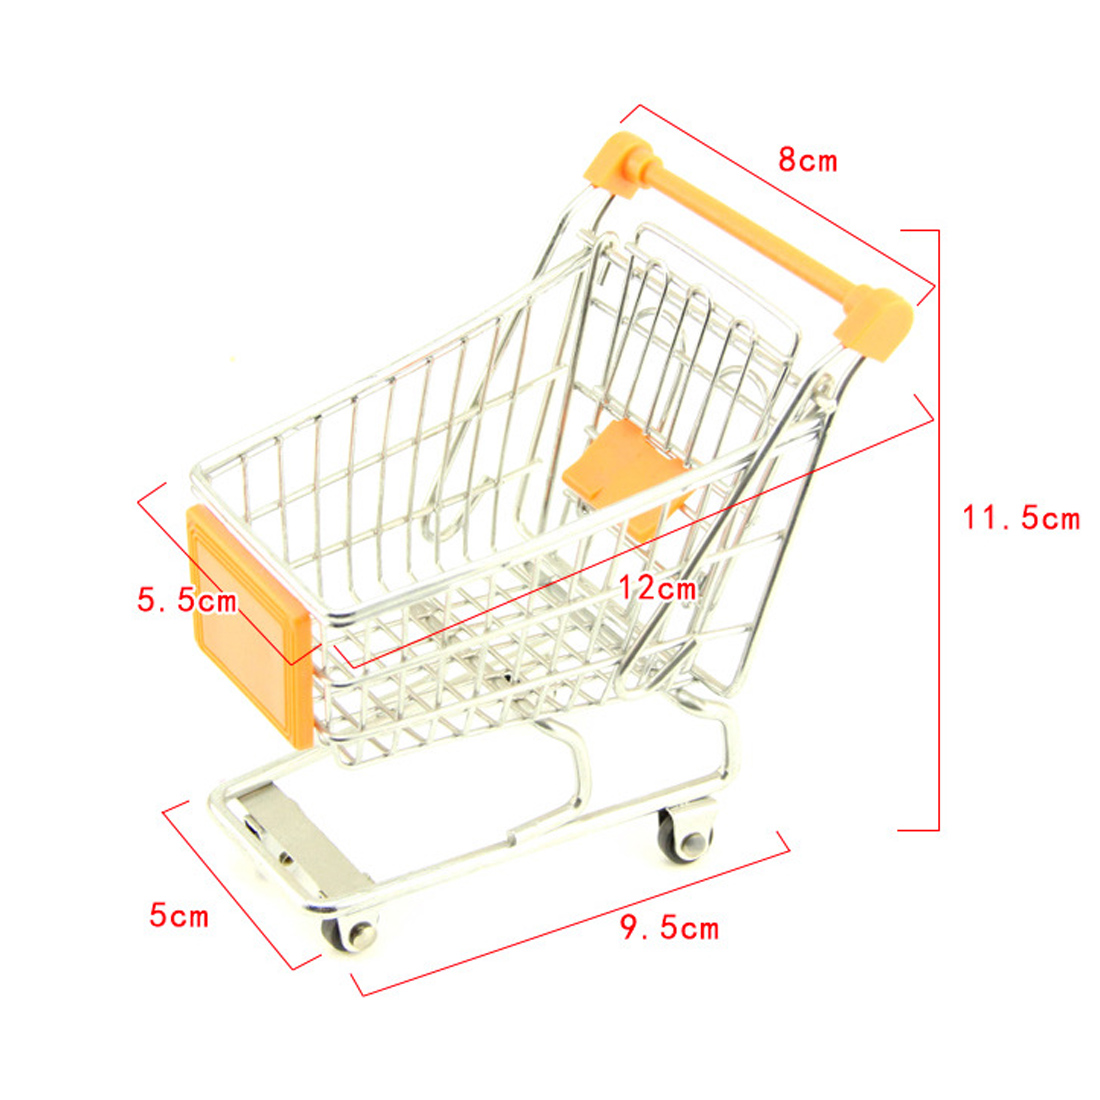 High Quality Cute Mini Supermarket Handcart Trolley Shopping Utility Cart Phone Holder Office Desk Storage Toy Cart Baby Toy